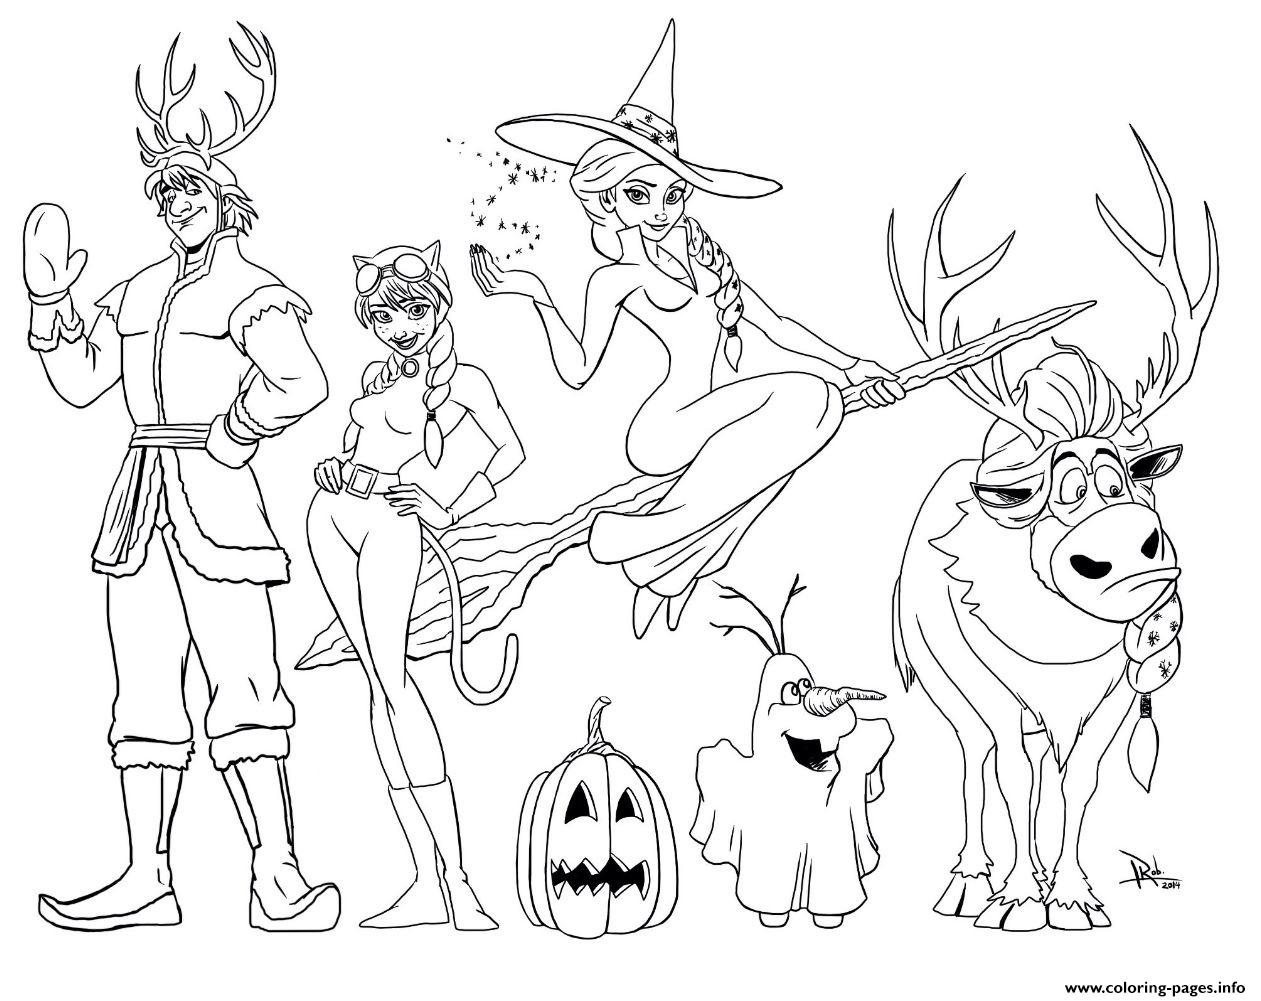 Coloring pages for frozen printable - Frozen Halloween Coloring Pages Print Download 321 Prints